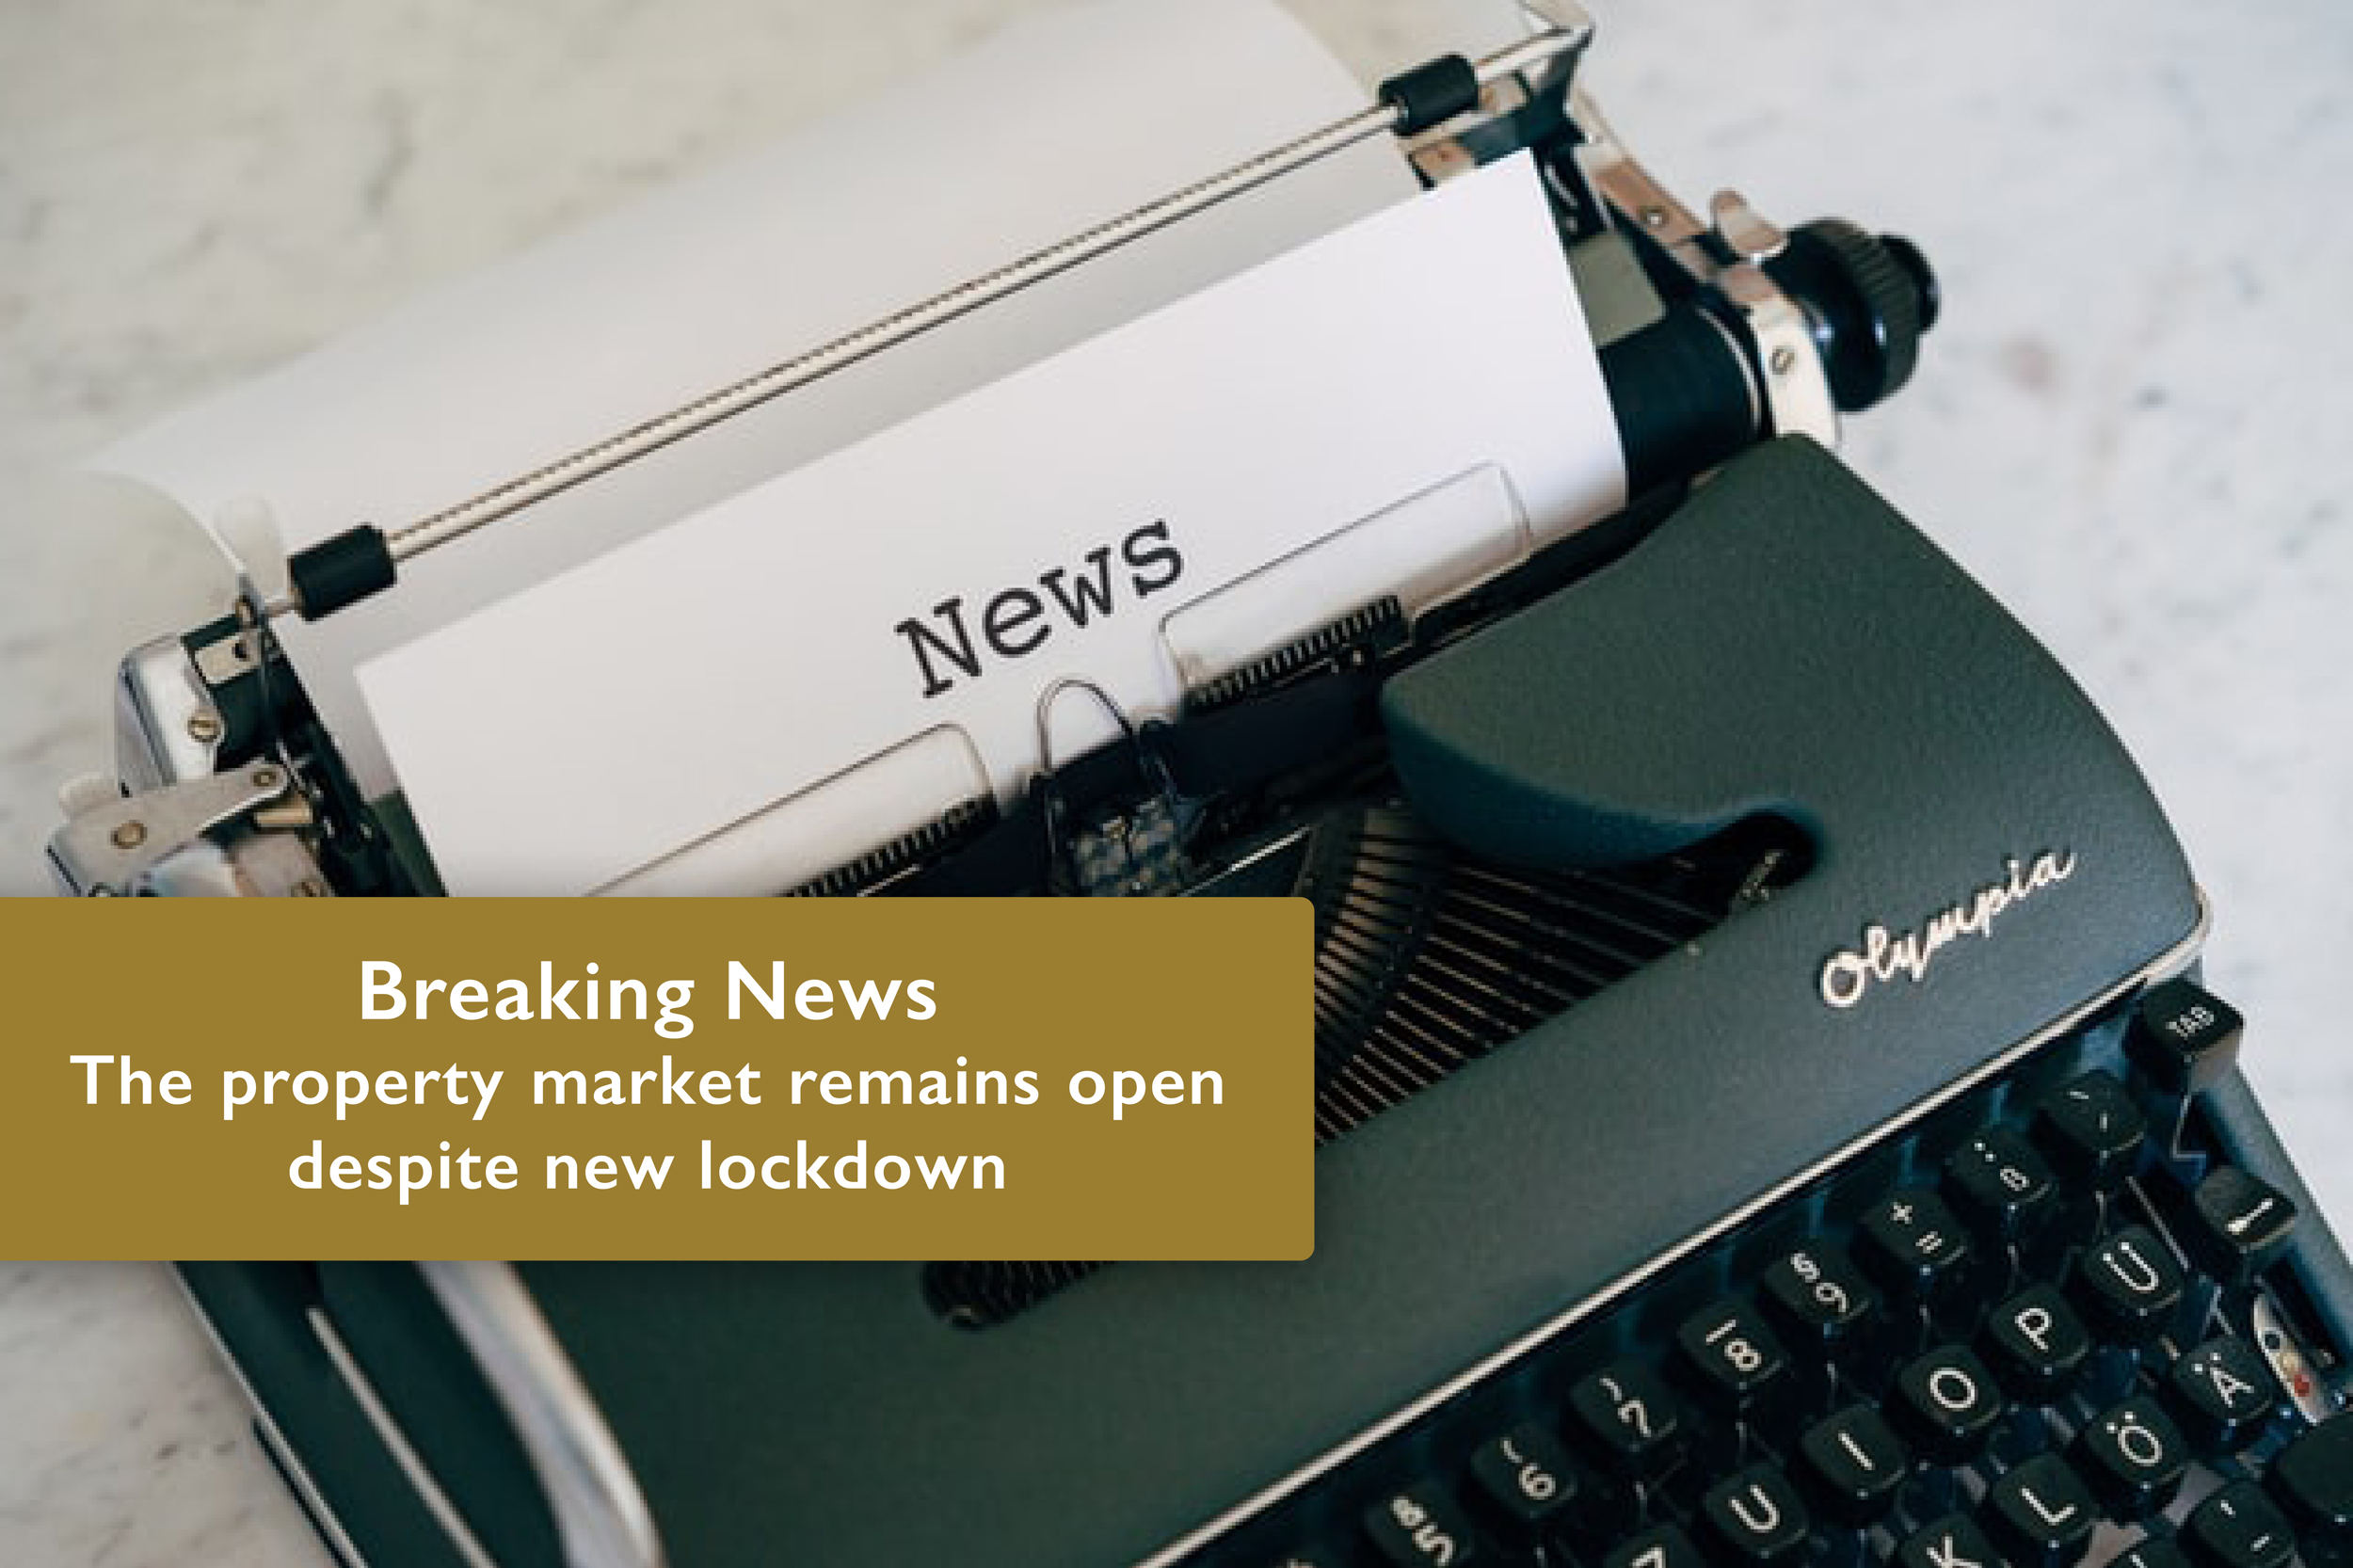 Breaking News – The property market remains open despite new lockdown